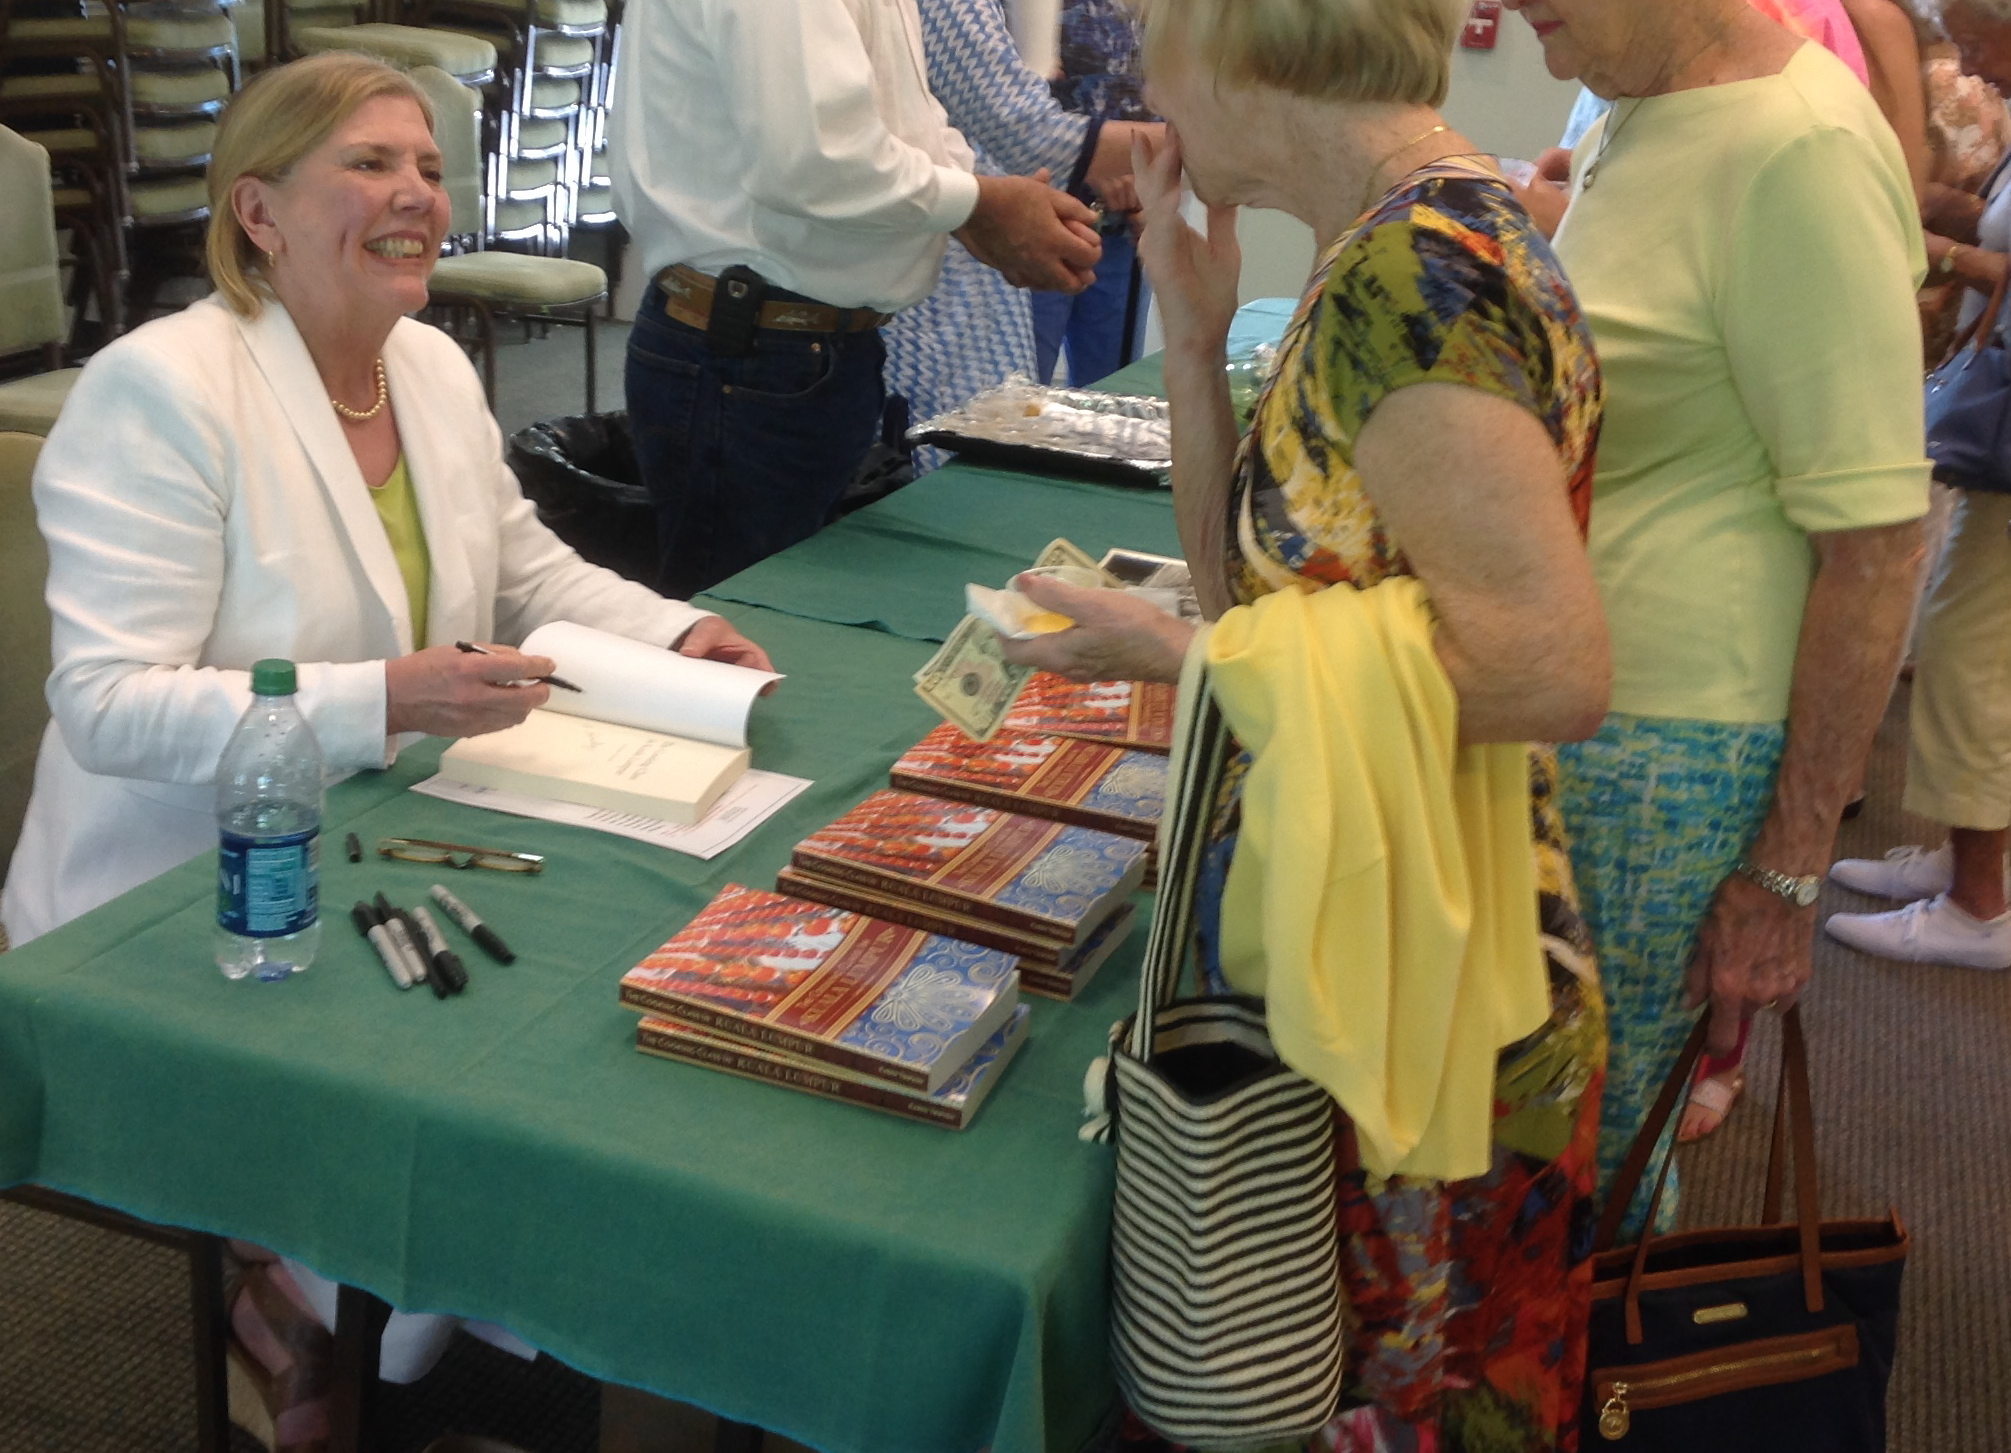 Meeting the audience and signing The Cooking Class in Kuala Lumpur